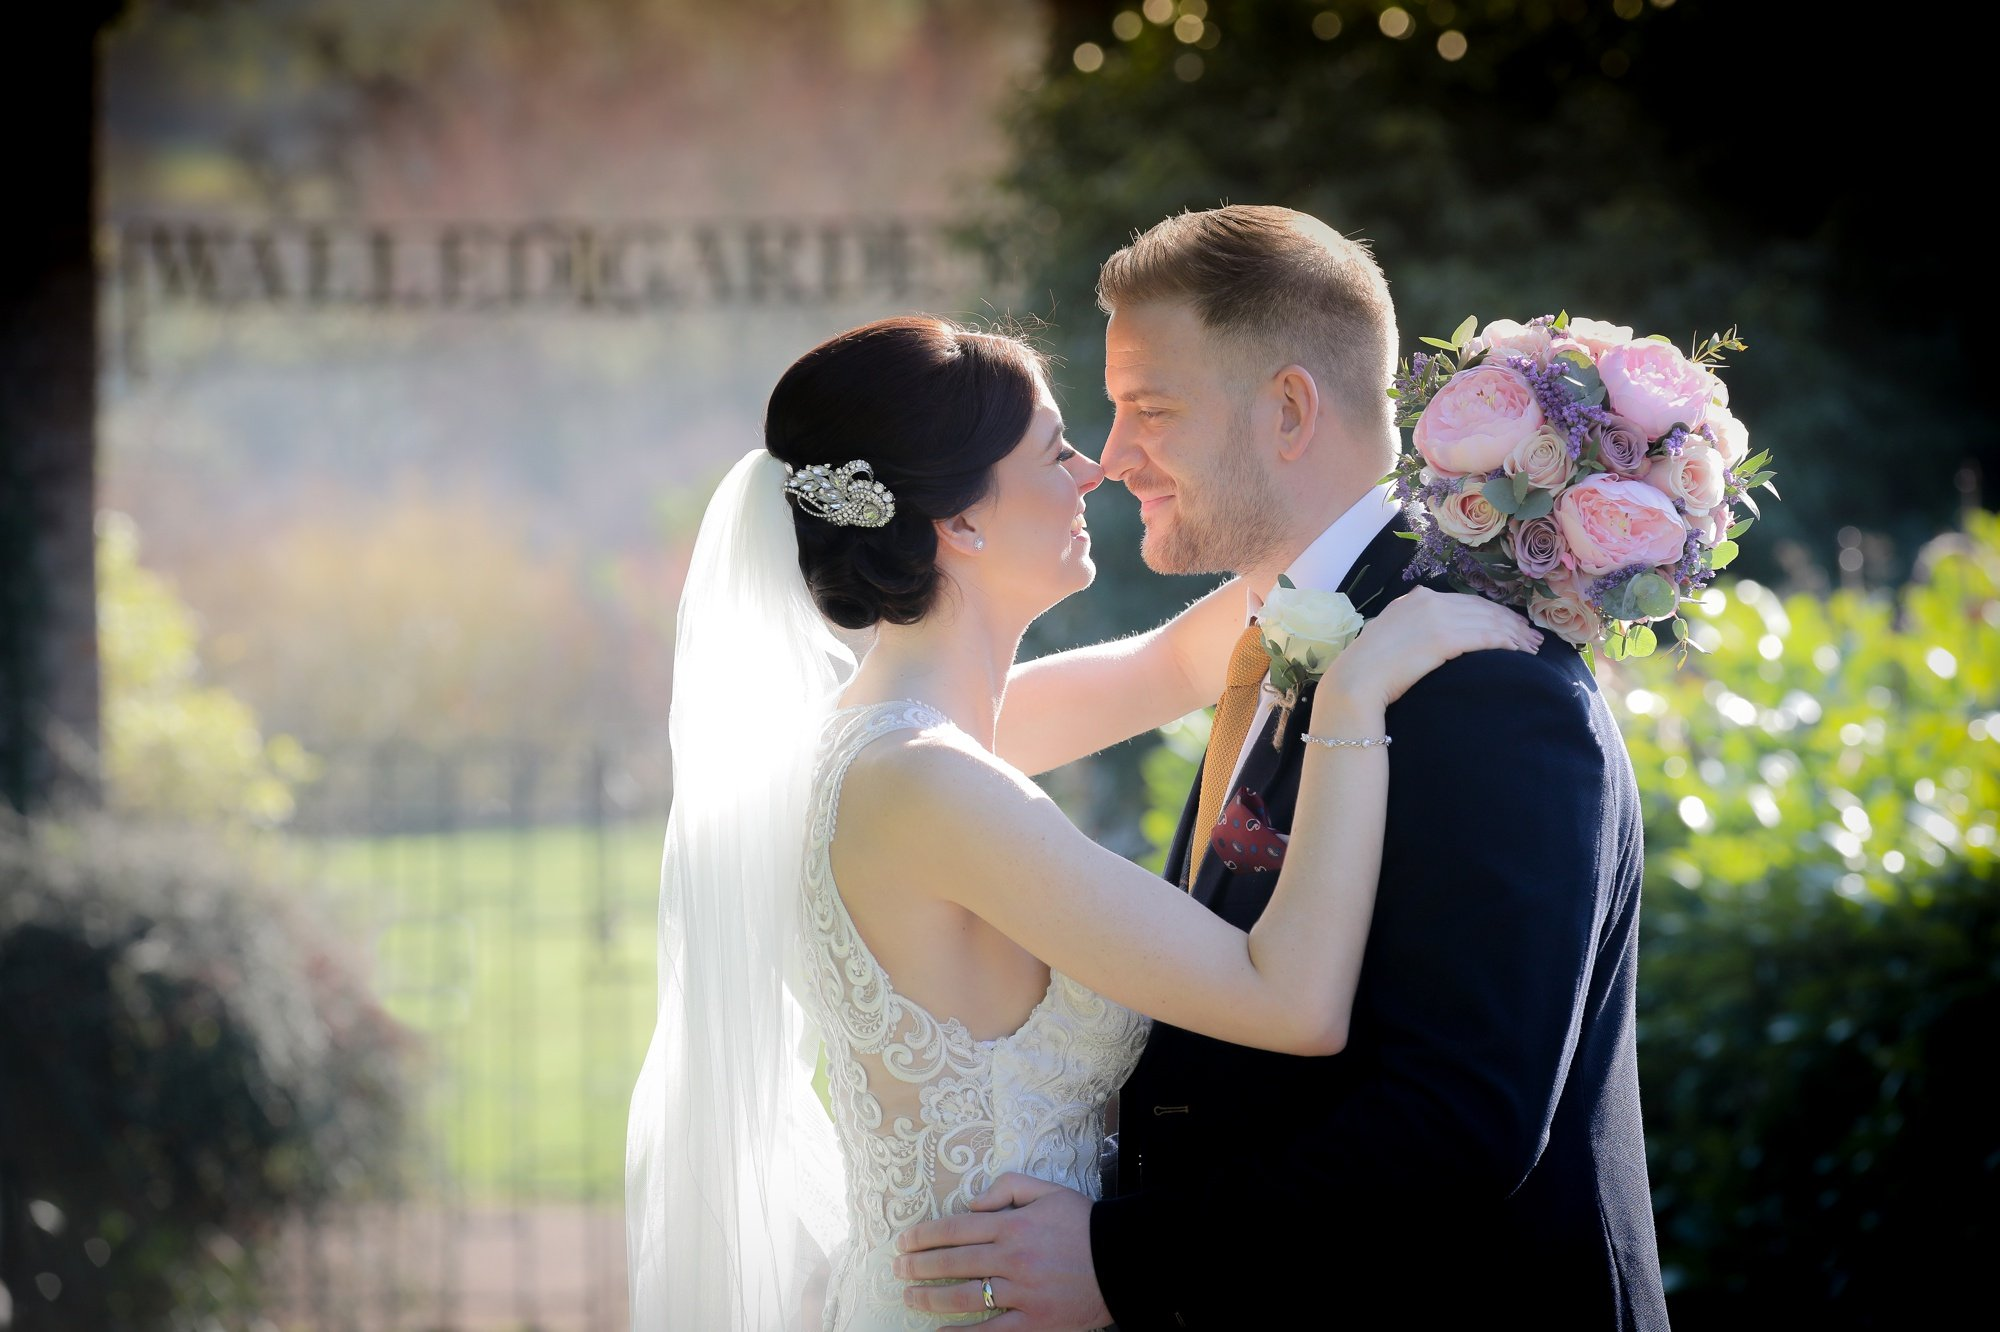 Fiona + Paul's Vintage themed wedding at Shenley Cricket Centre